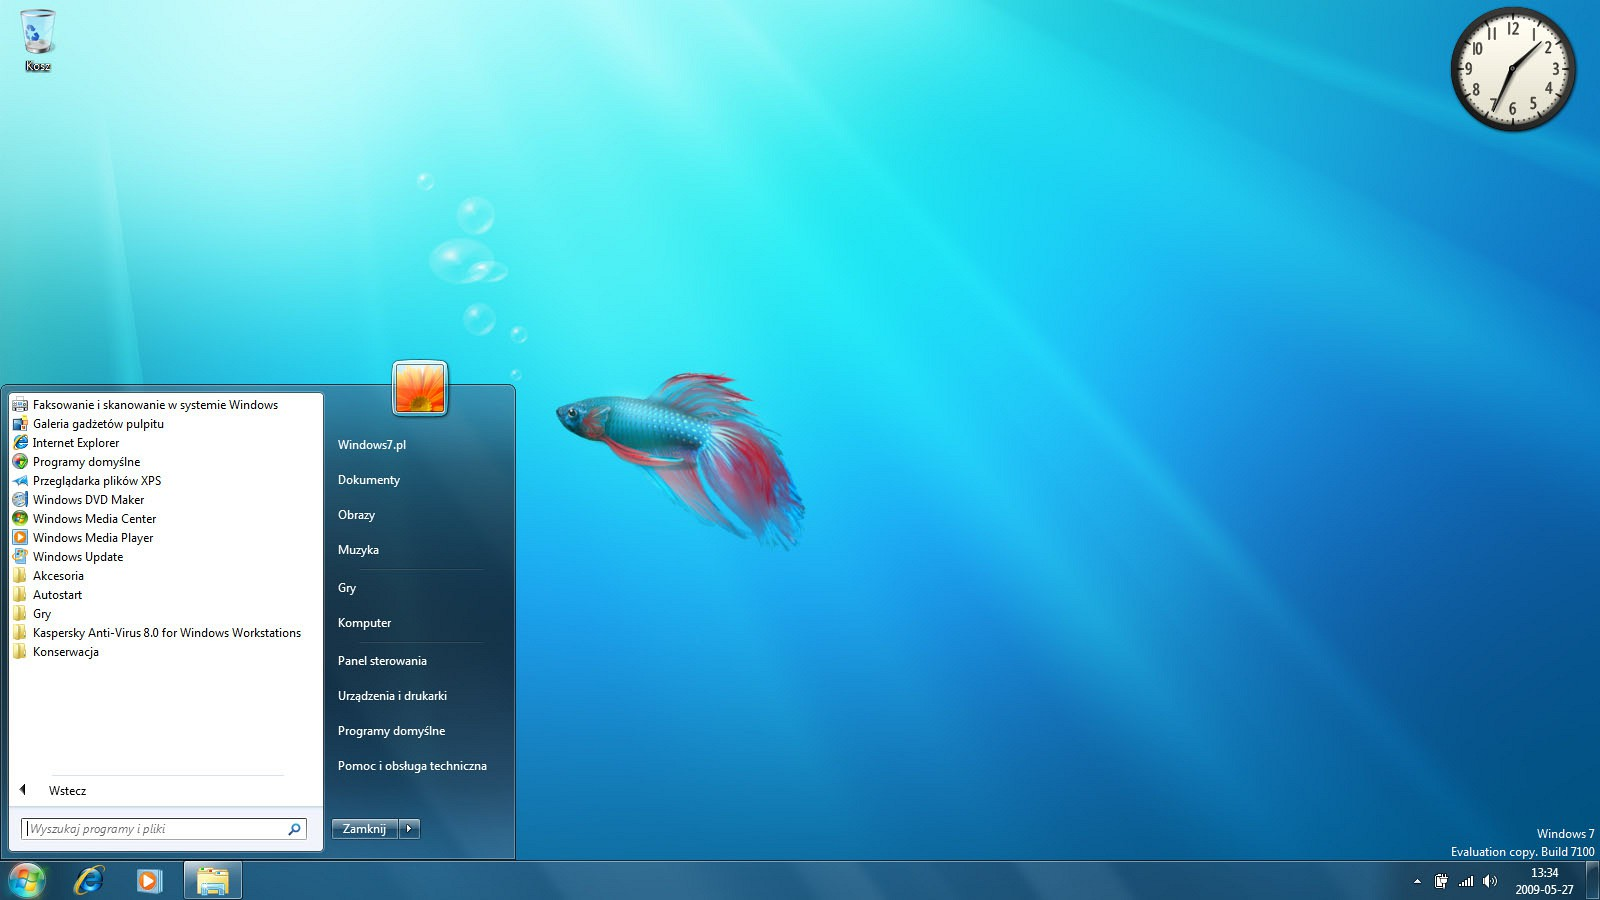 Windows 7 beta download free